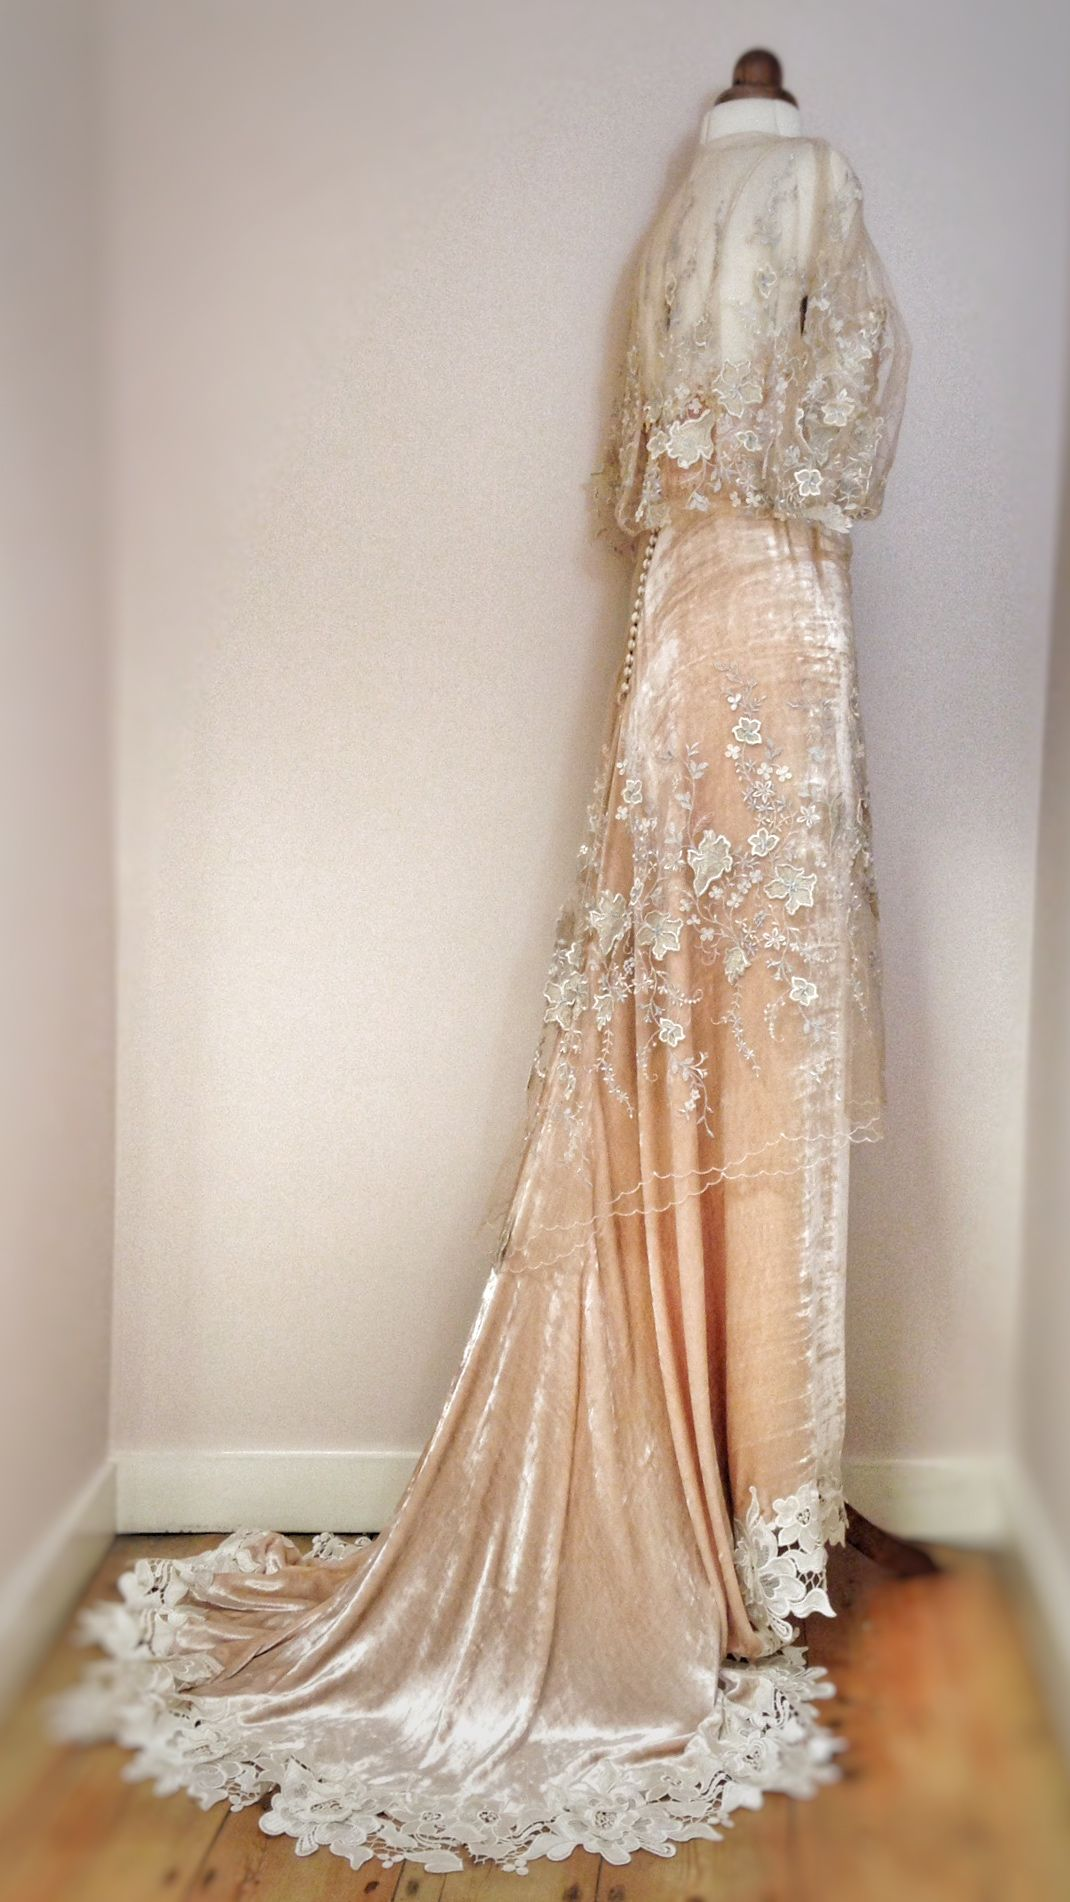 Champagne Silk Velvet And Platinum Gold Embroidered Tulle Belle Epoque Inspired Wedding Dress By Joanne Fleming Design